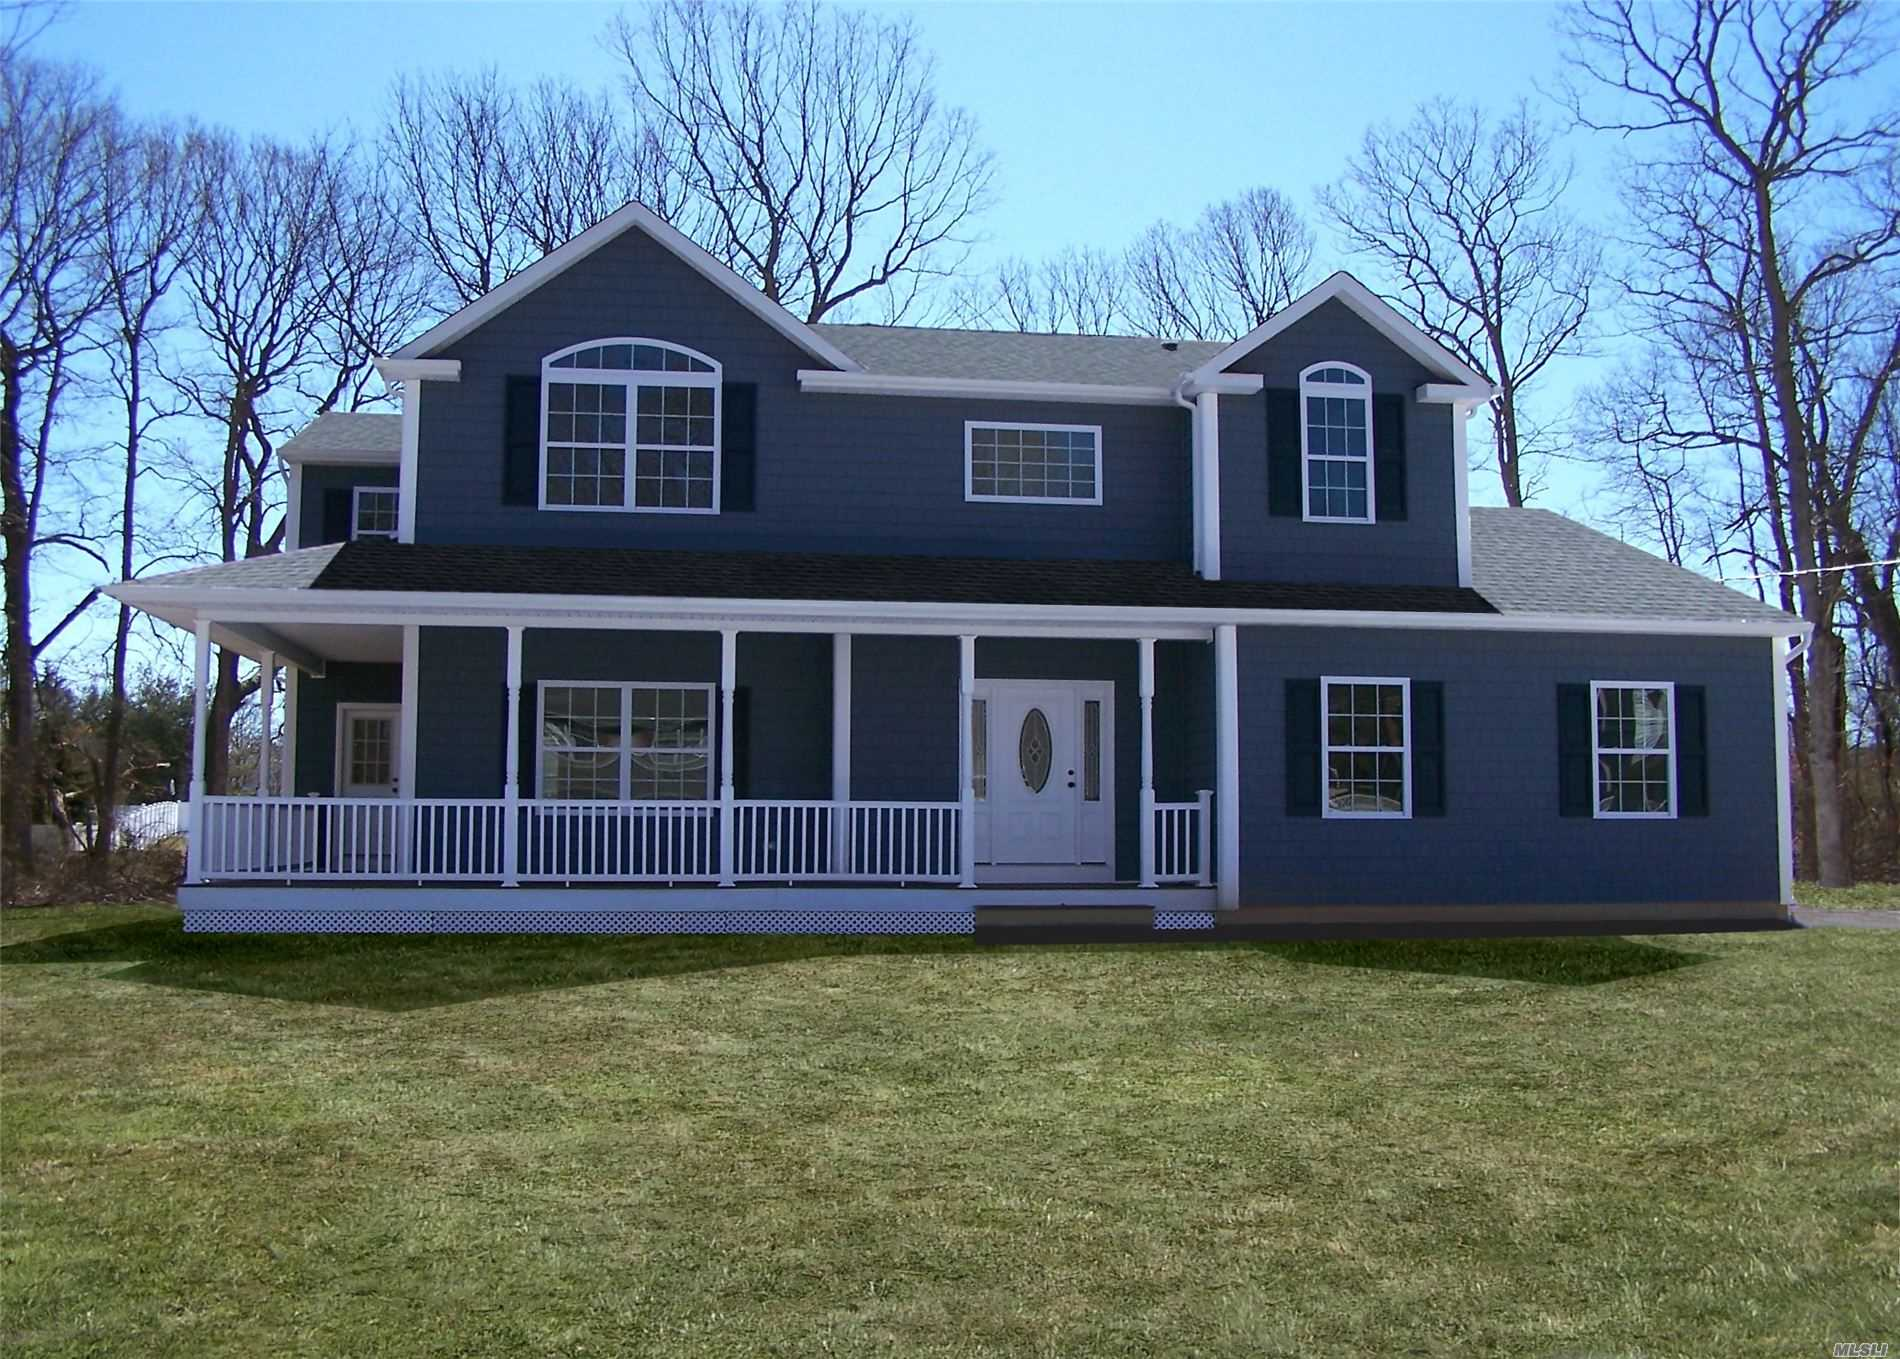 Residenziale in Lot 4 State St, Lake Grove, NY ,11755